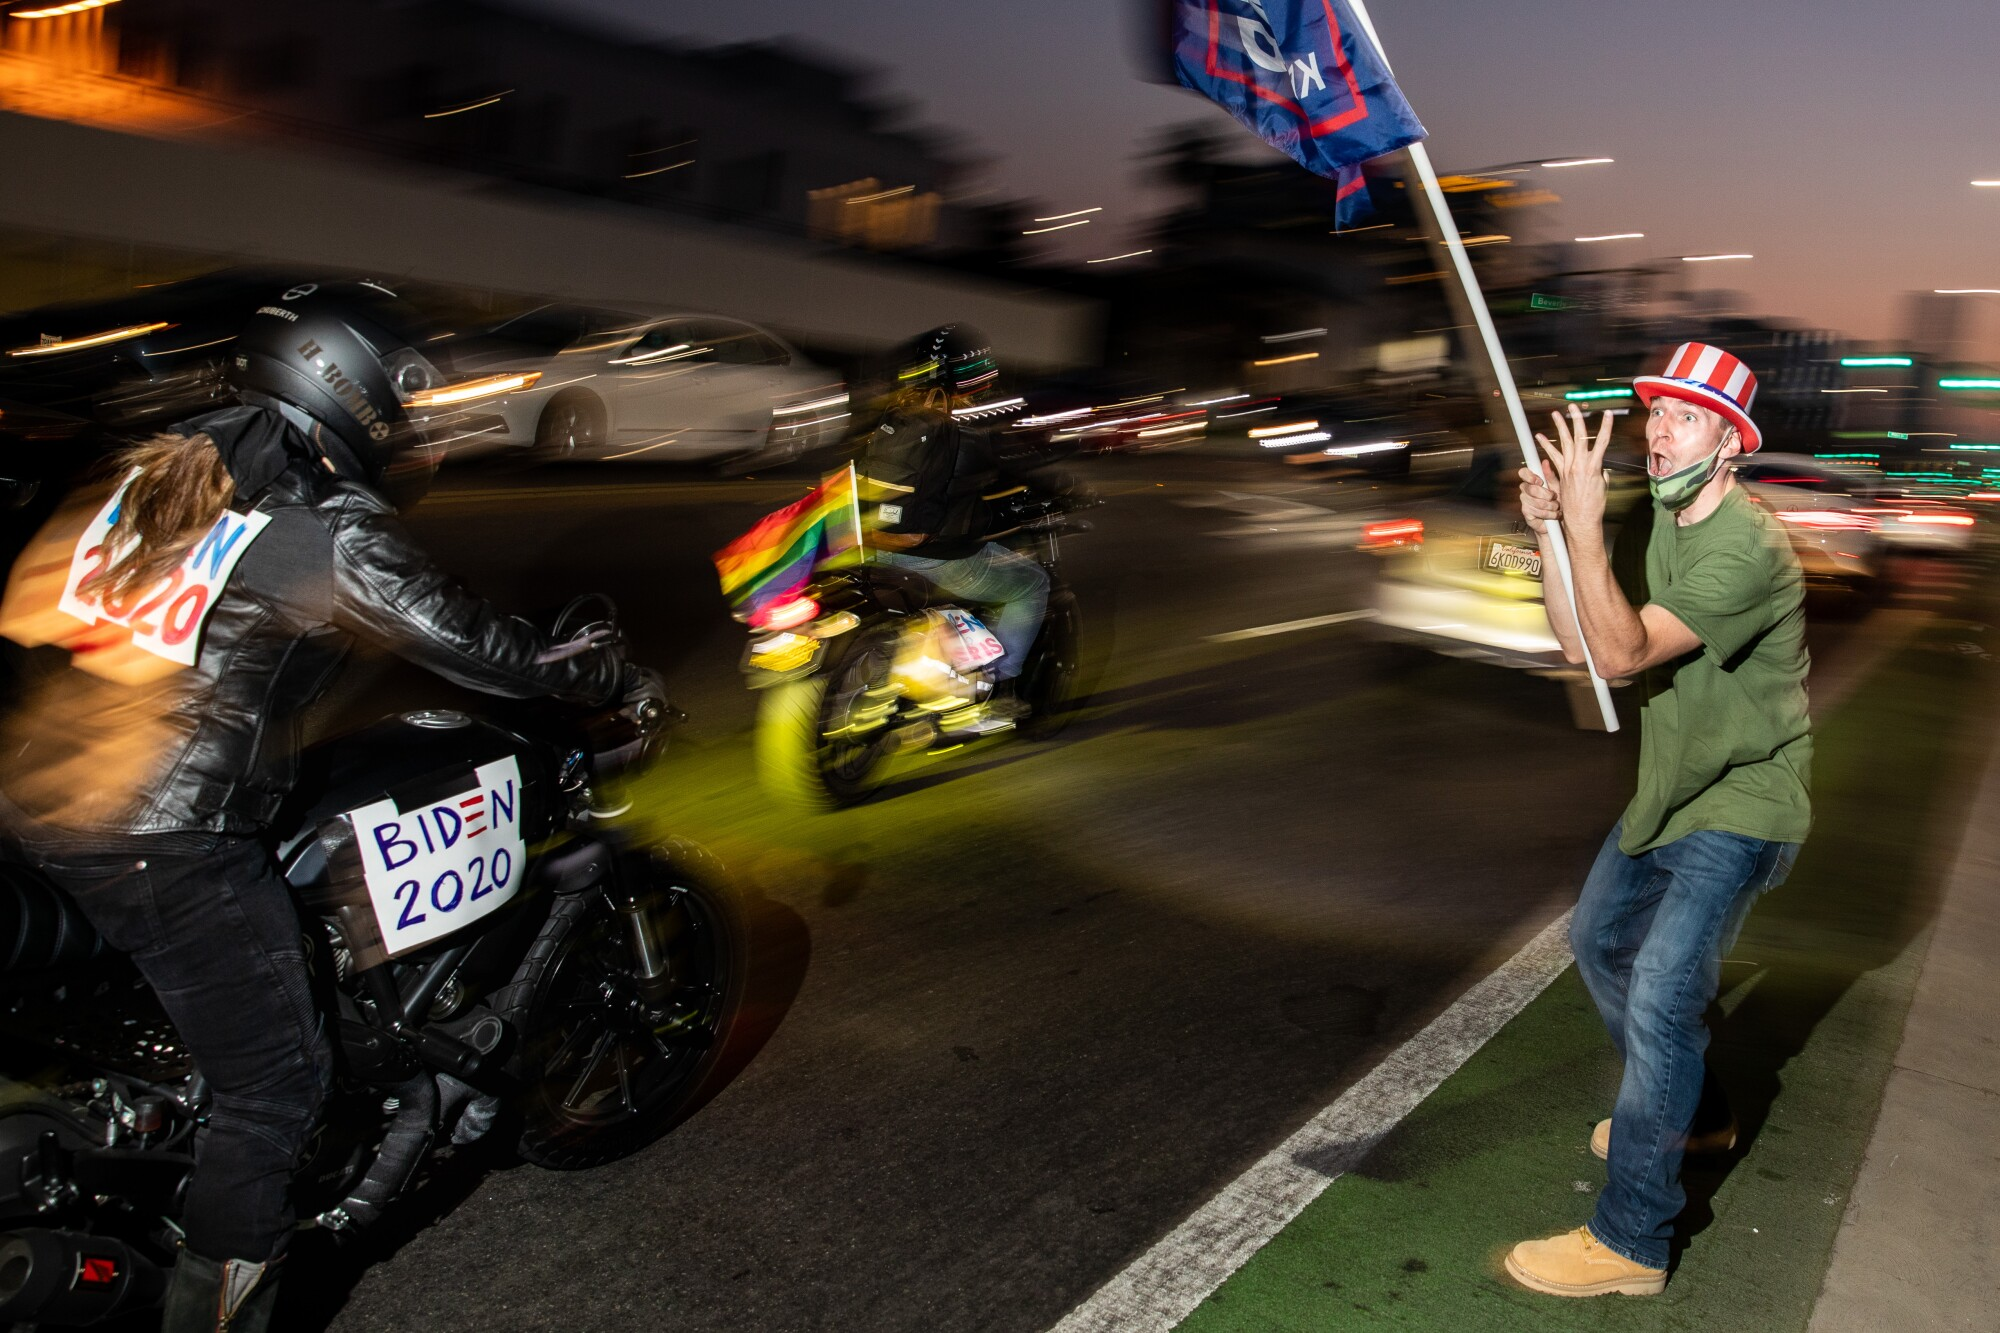 A supporter of President Trump waves a flag as Joe Biden supporters ride by on motorcycles in Beverly Hills